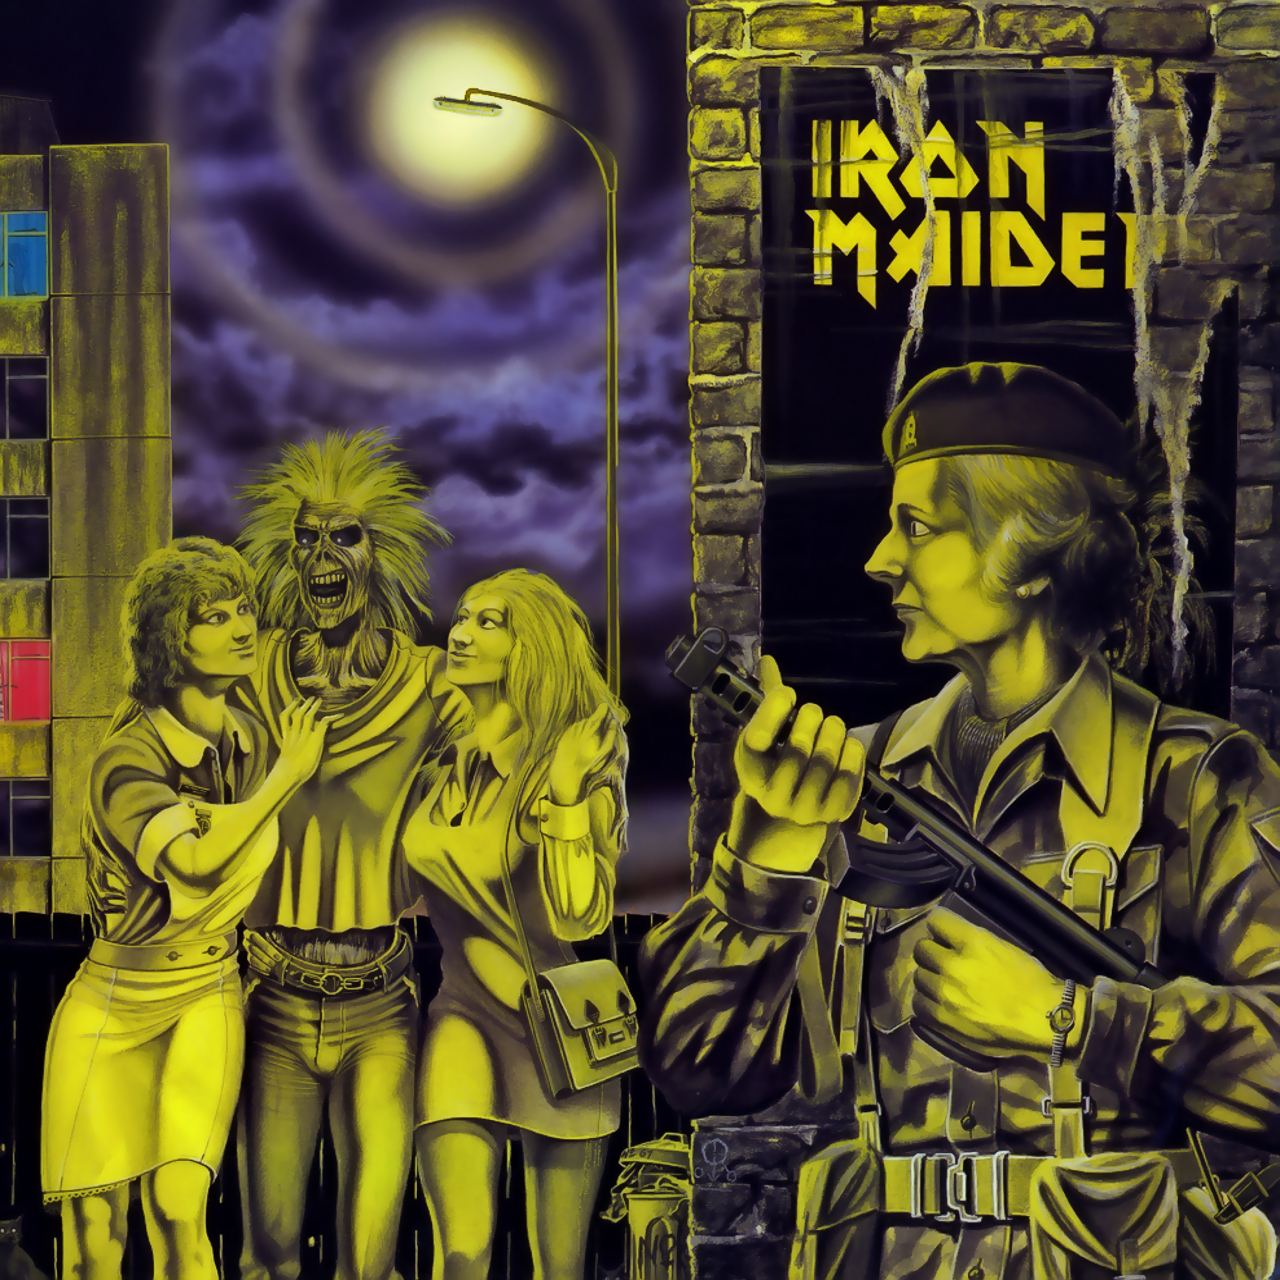 single women in maiden rock Style rock  is this  1980 french pressing of iron maiden, women in uniform 12 single this single was released in 1980 on emi records, emi – 2c 052-52879z.